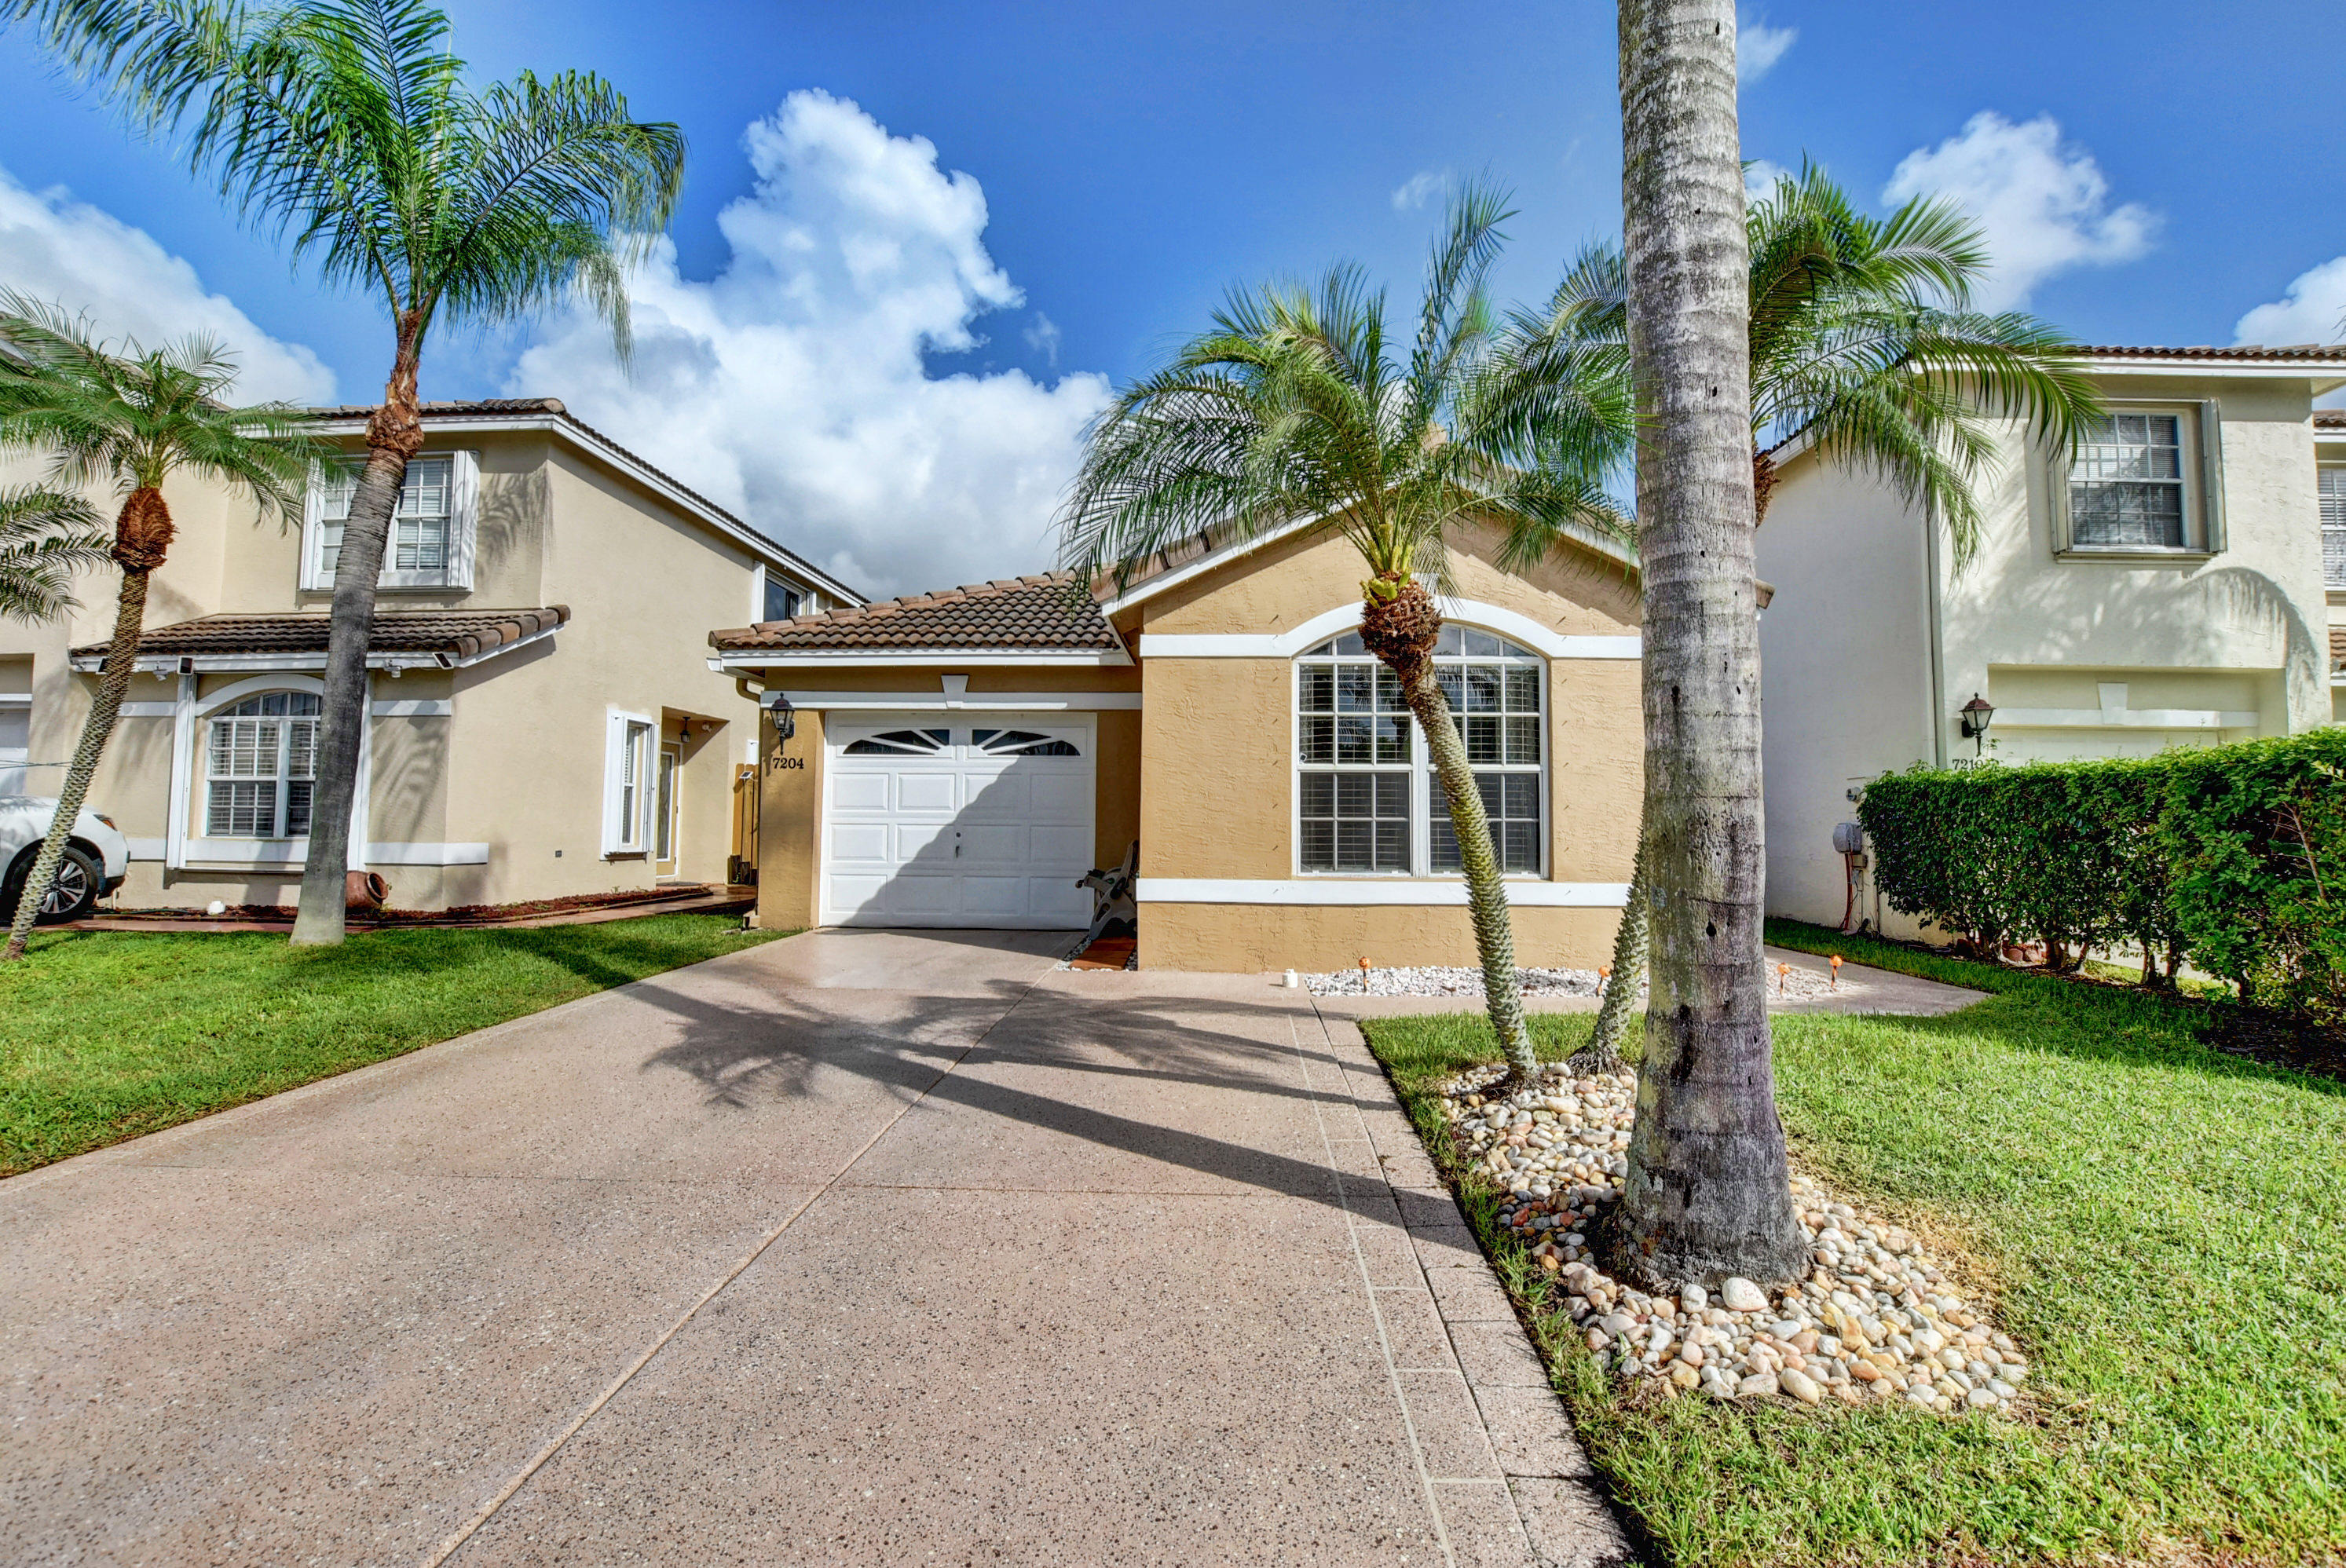 Home for sale in The Islands Lake Worth Florida